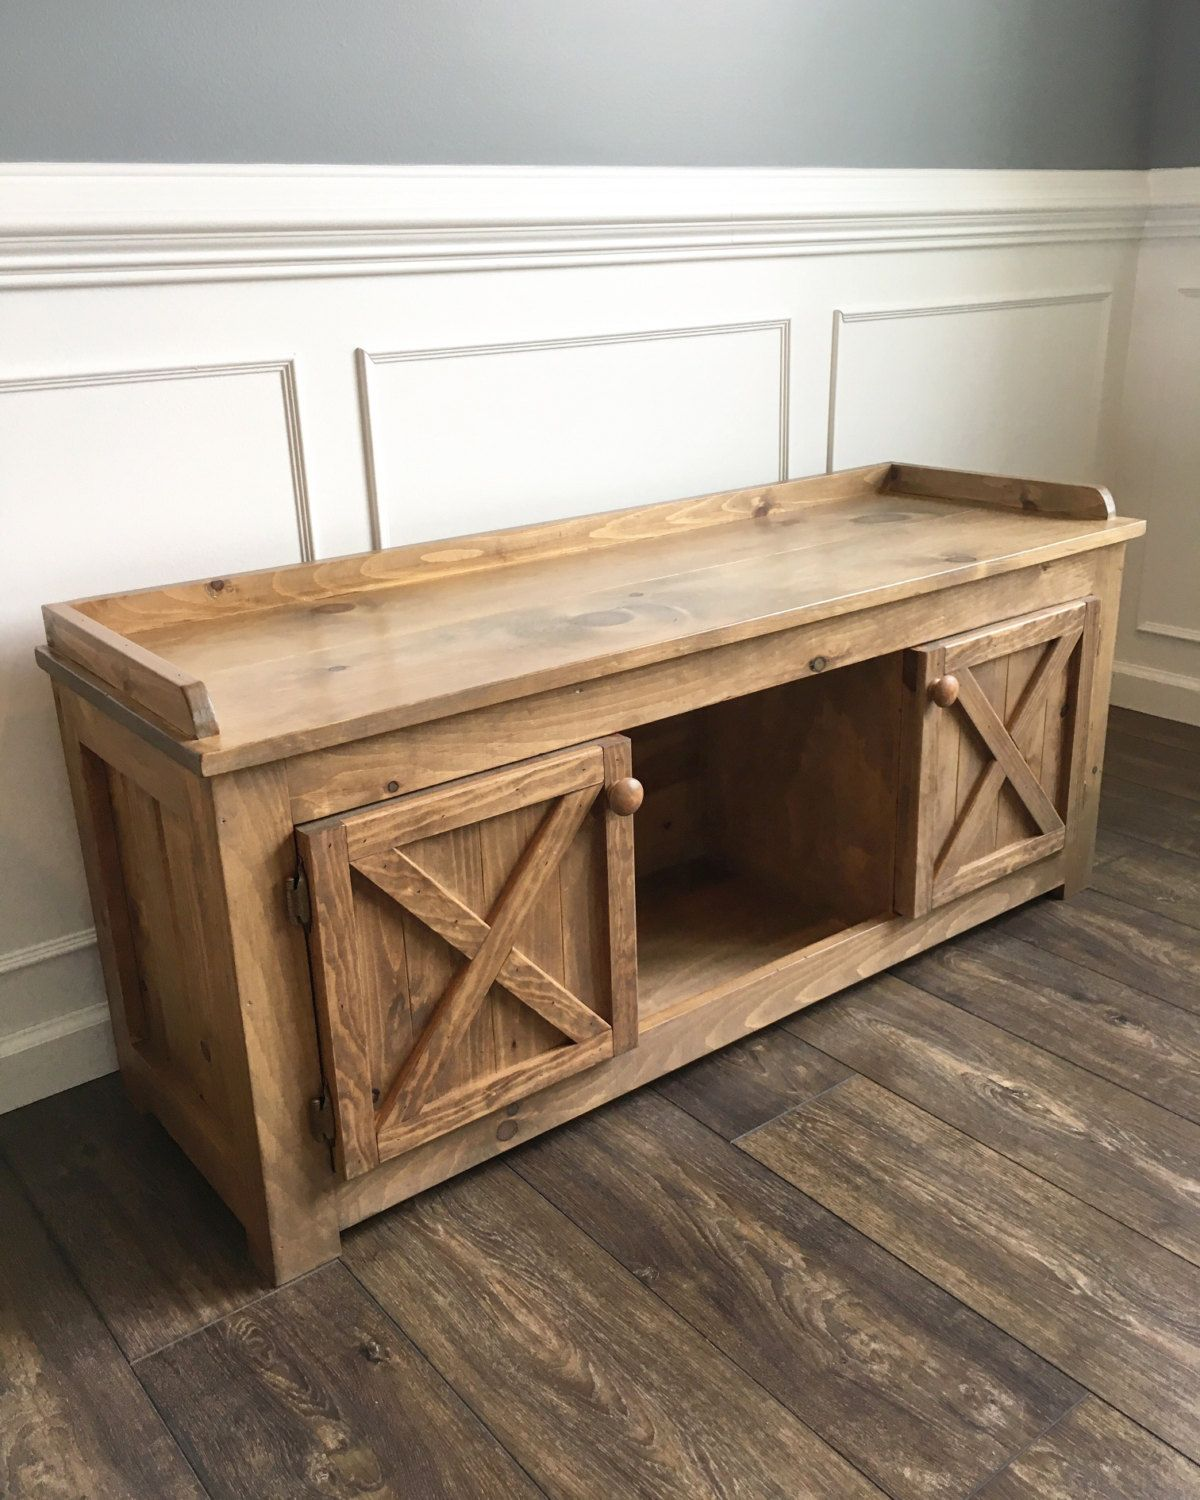 Entryway Bench / Mudroom Bench | Bancos, Entrar y Locales